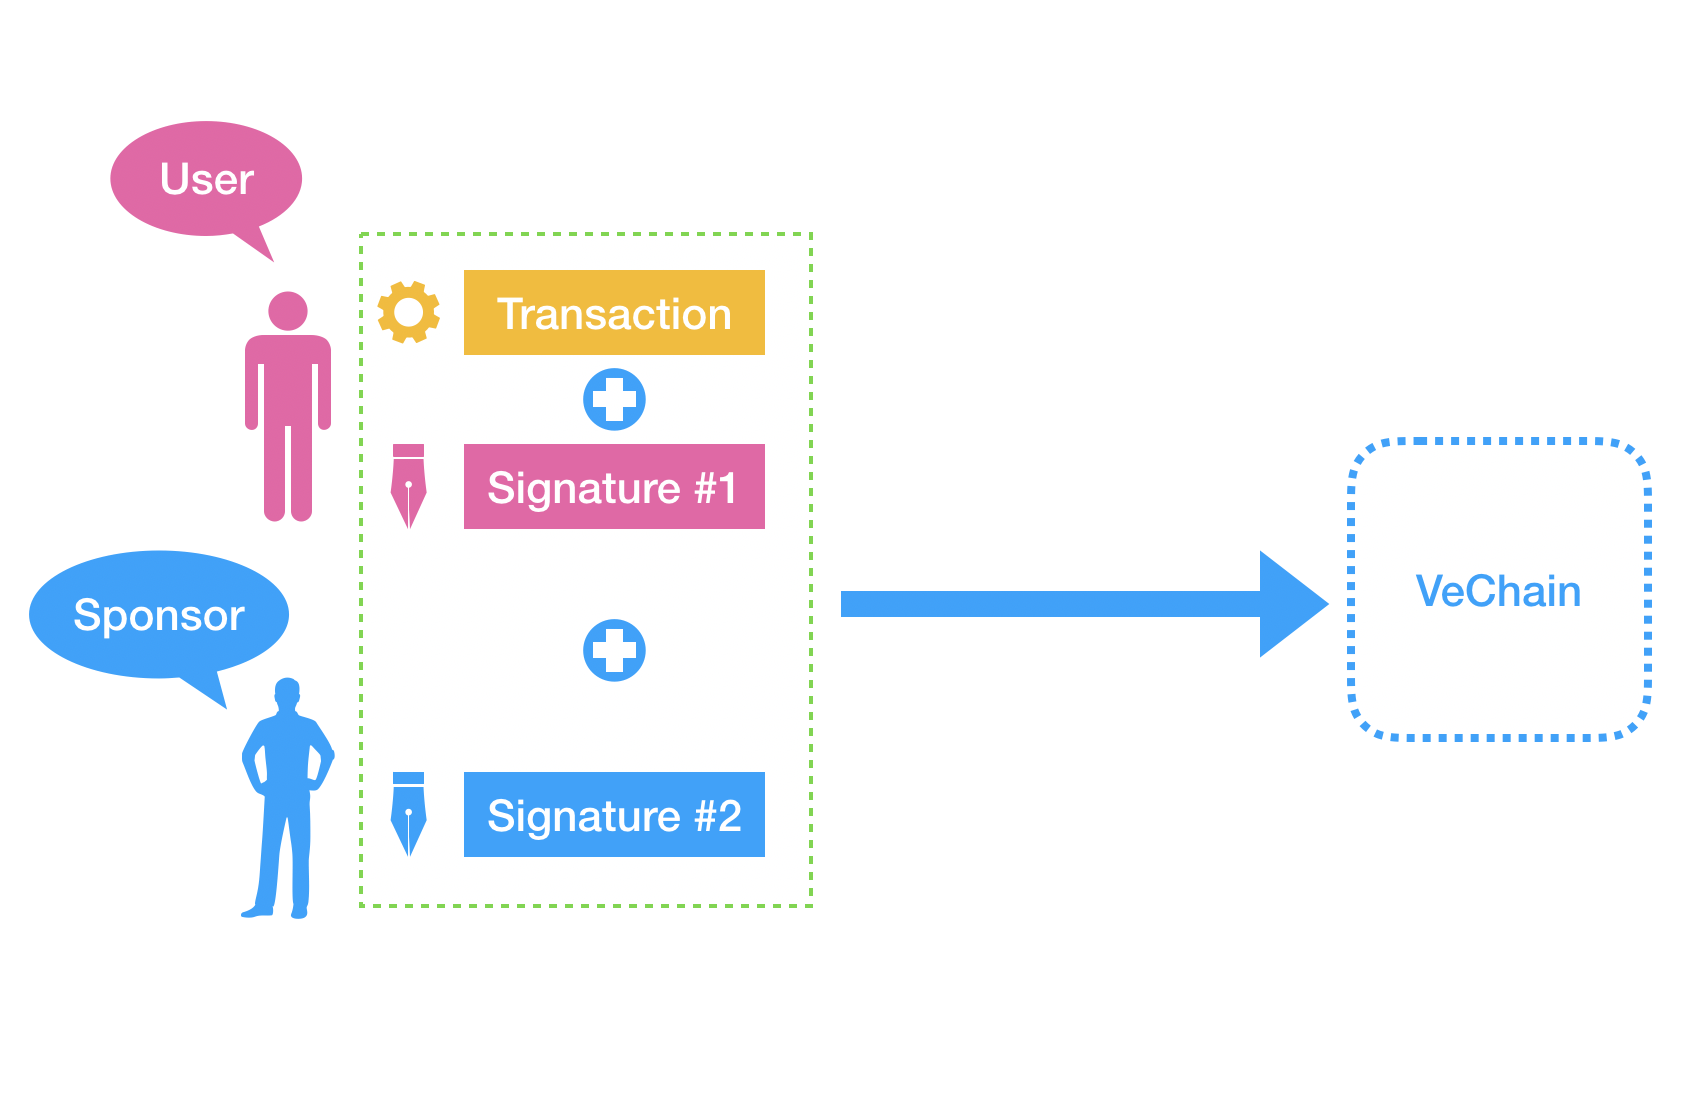 Concatenate Signatures to forge a VIP-191 signature